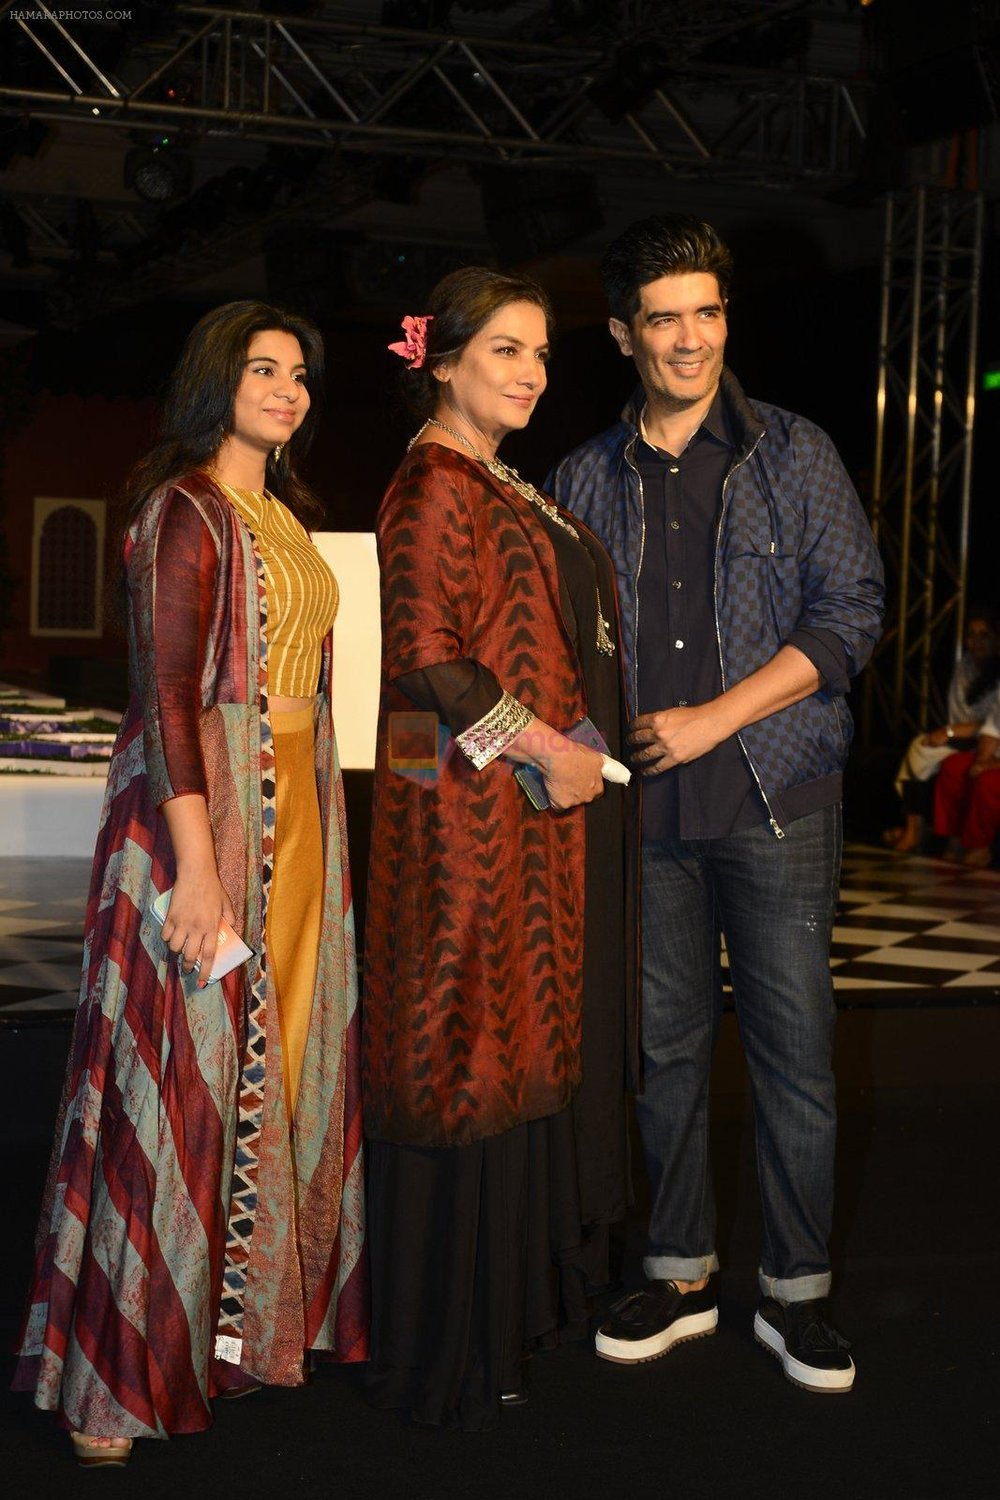 Shabana Azmi, Manish Malhotra walk the ramp for Anita Dongre show at the FDCI India Couture Week 2016 on 21st July 2016 shown to user